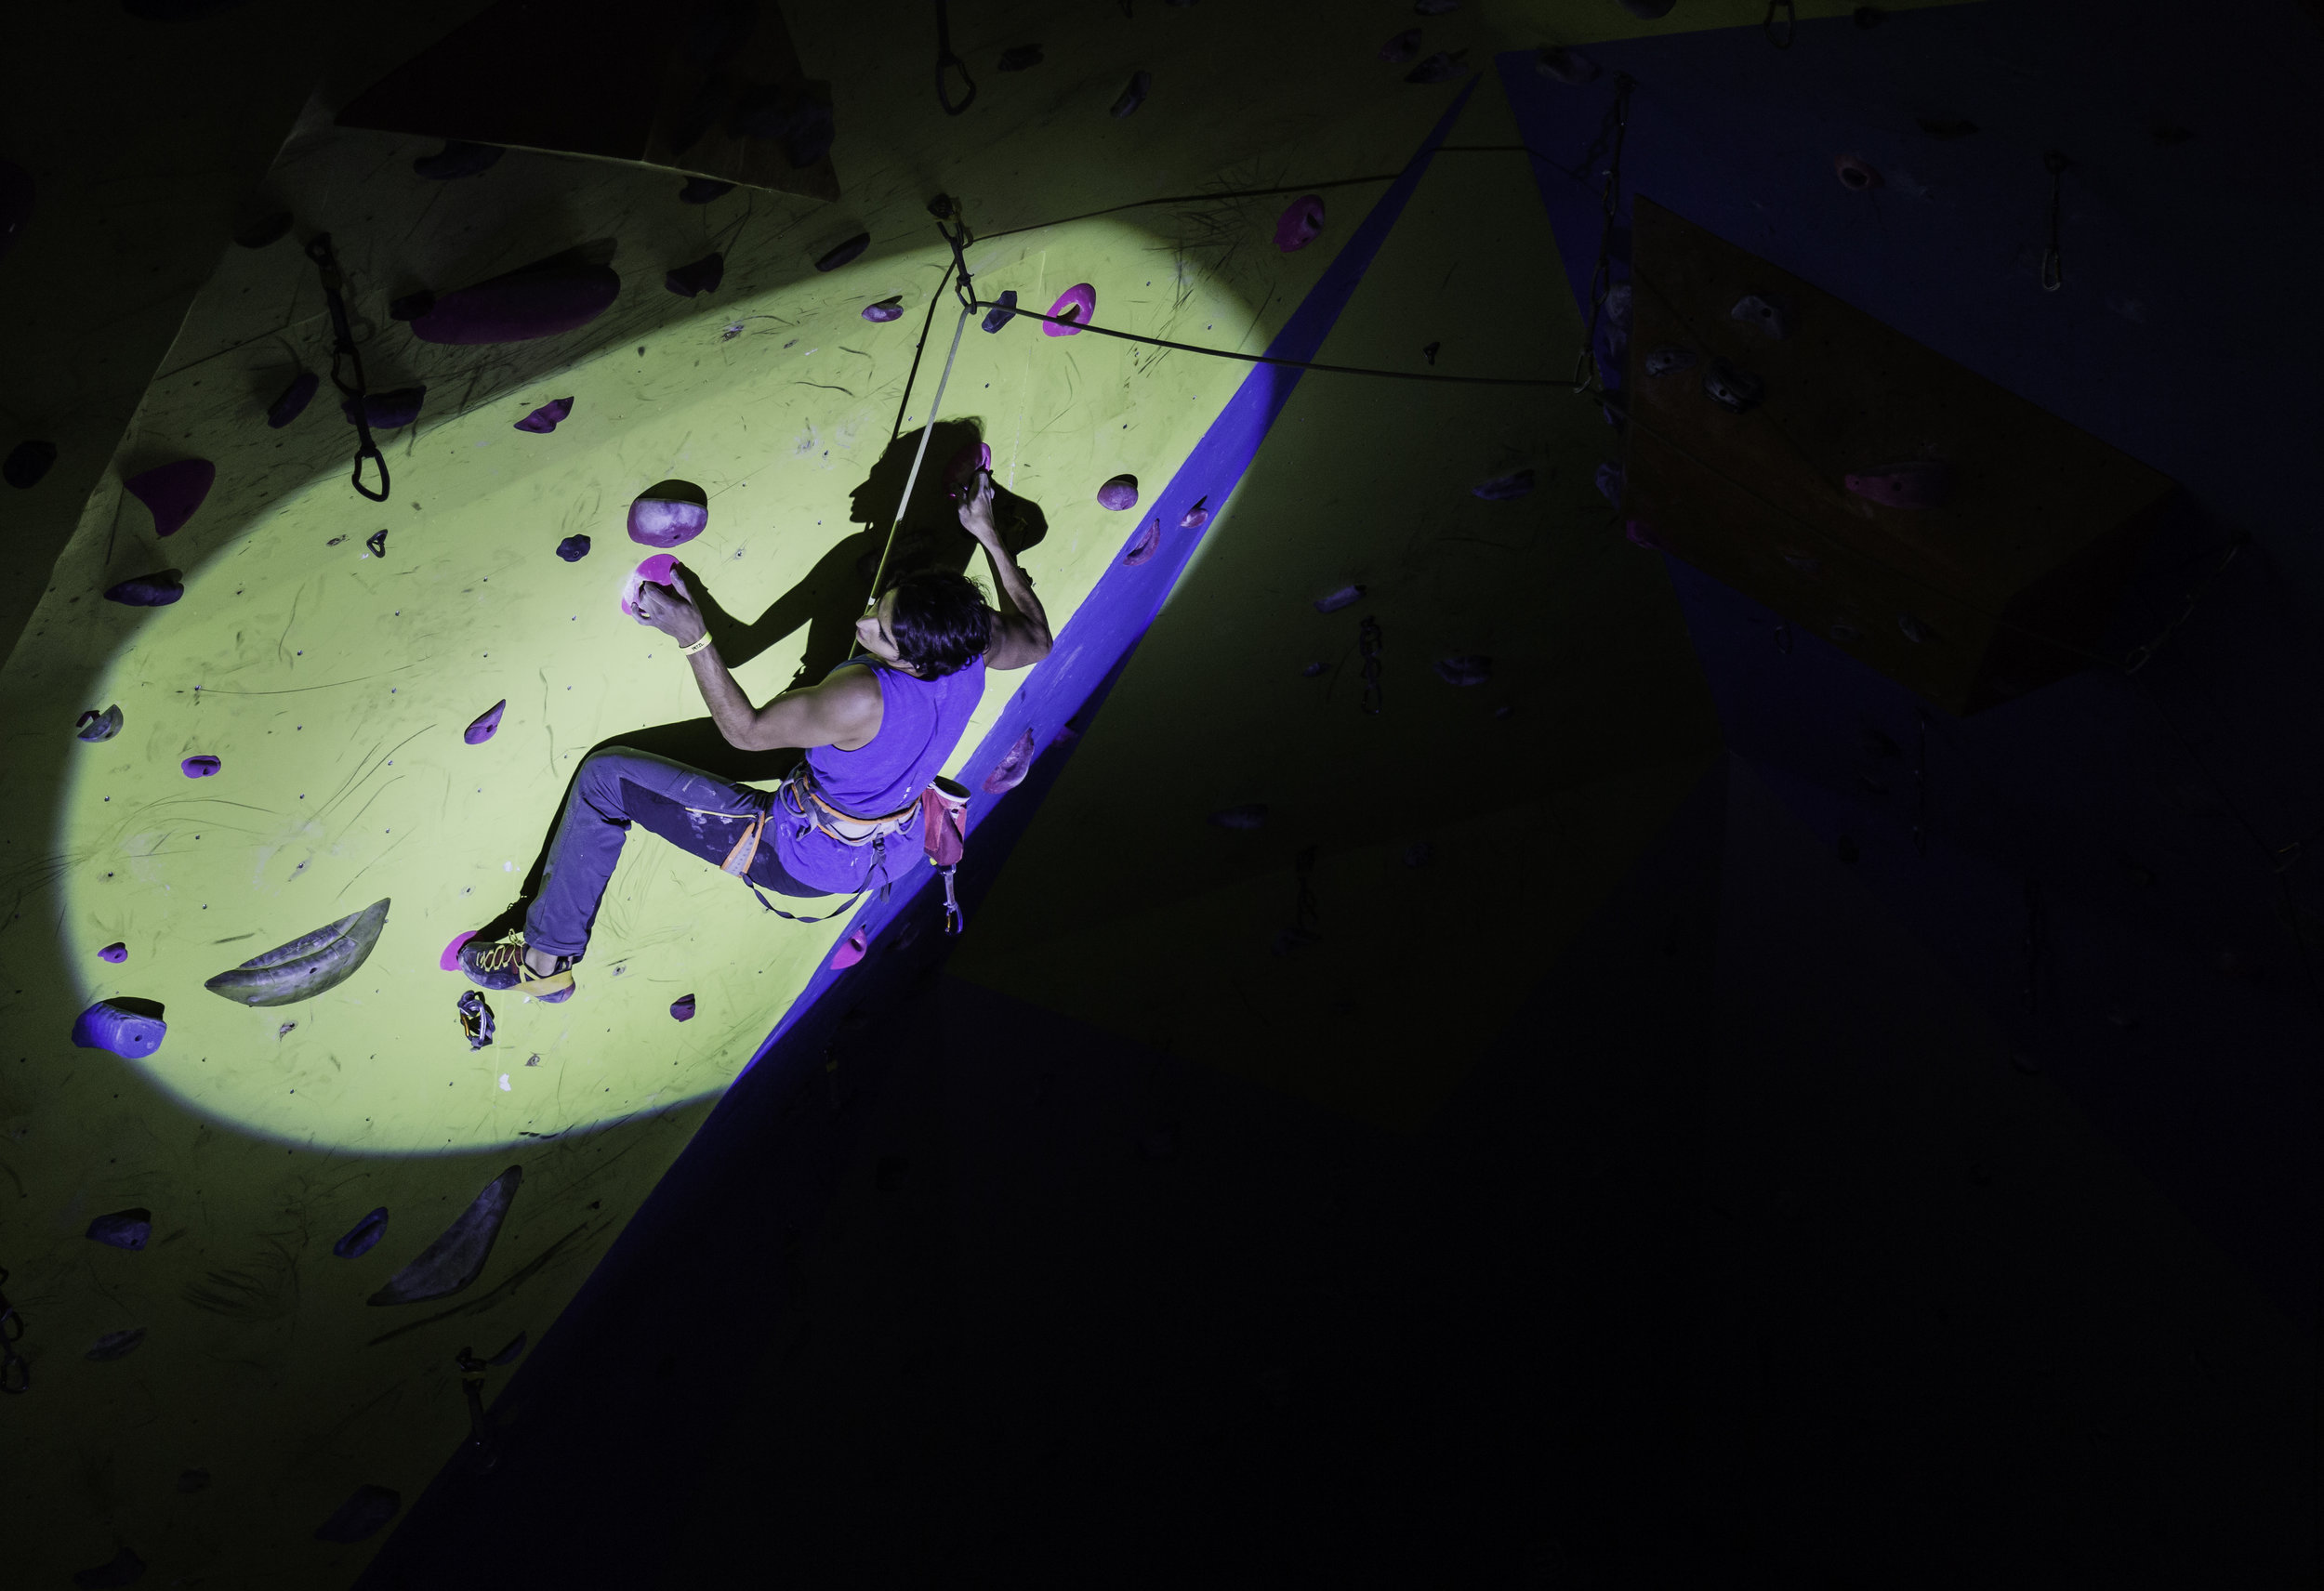 nightclimbing1.jpg